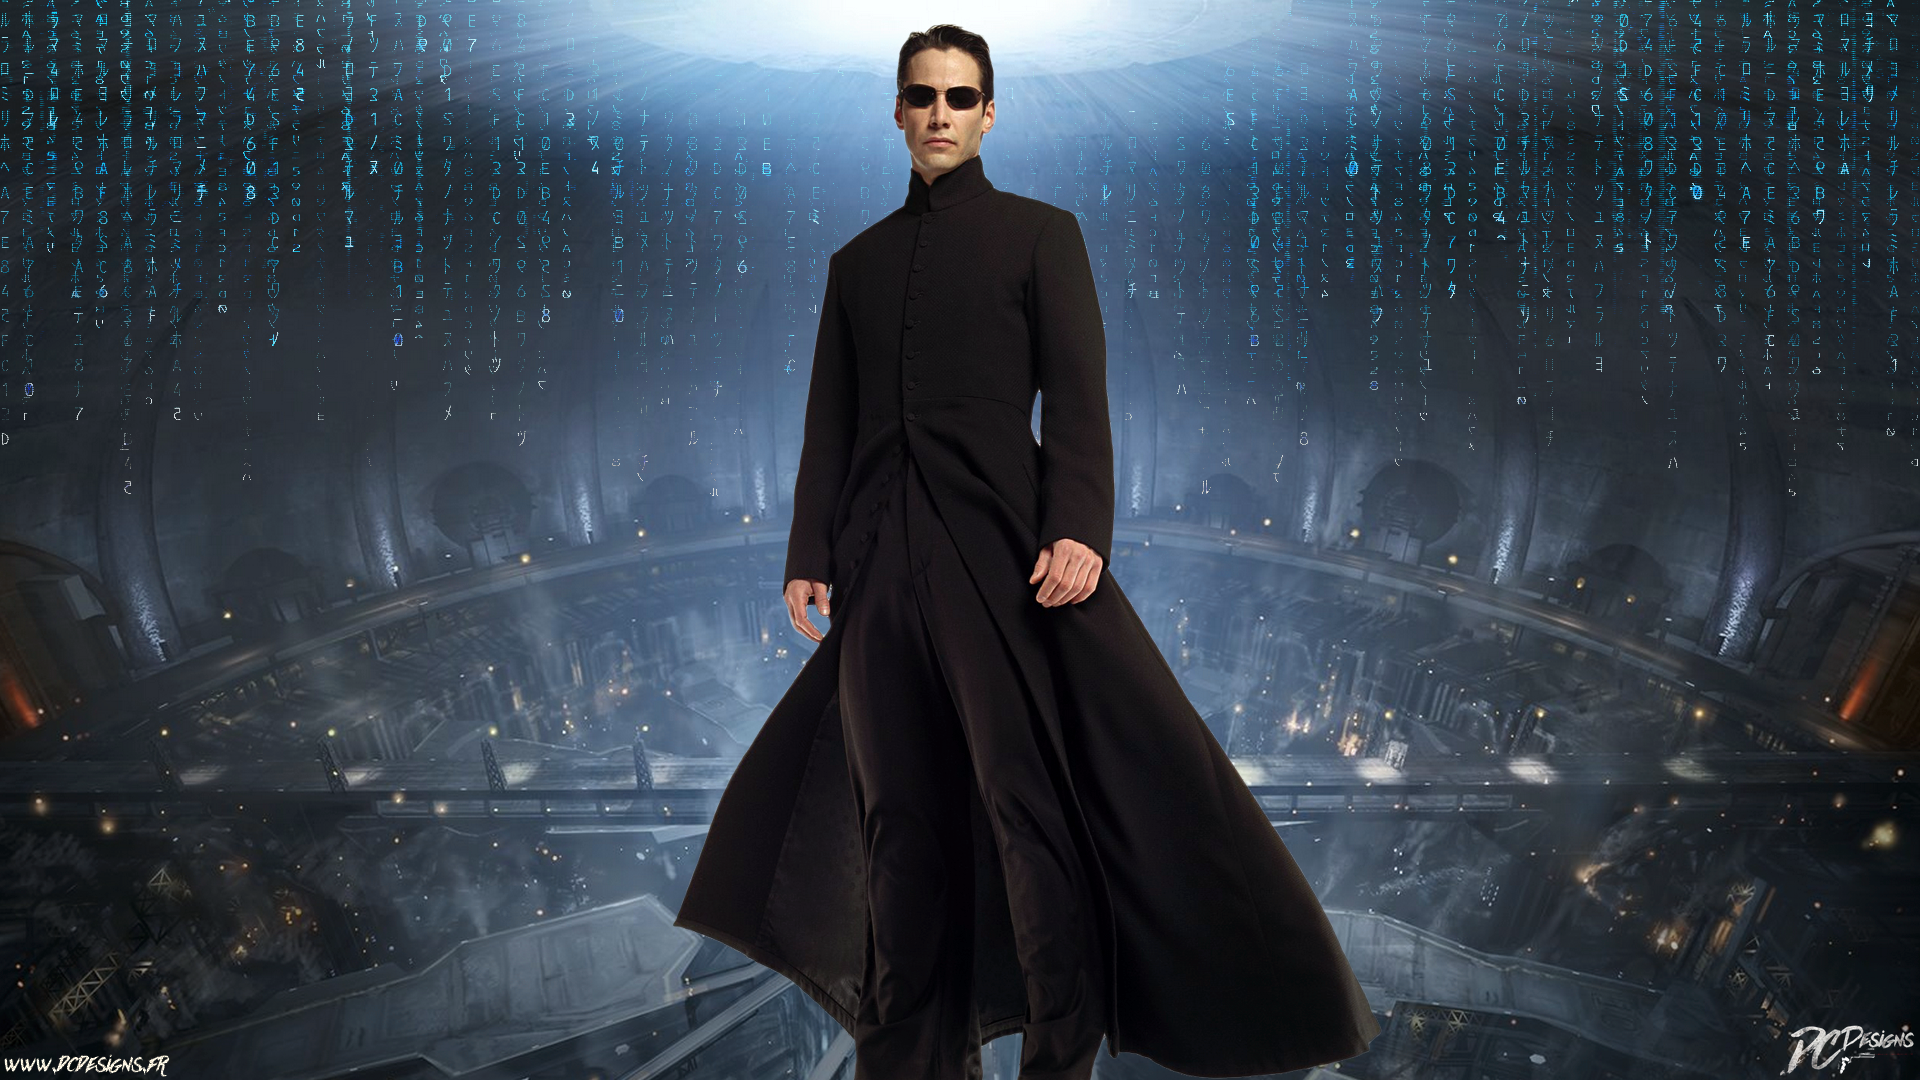 a comparison of the character of neo from the matrix and jesus christ In the matrix, for example, a minor character speaking to neo says the sentence you're my own personal jesus christ, you know that although there are generally no important character actions involved, these little exclamations serve as explicit nods to the themes of the film's subtext.